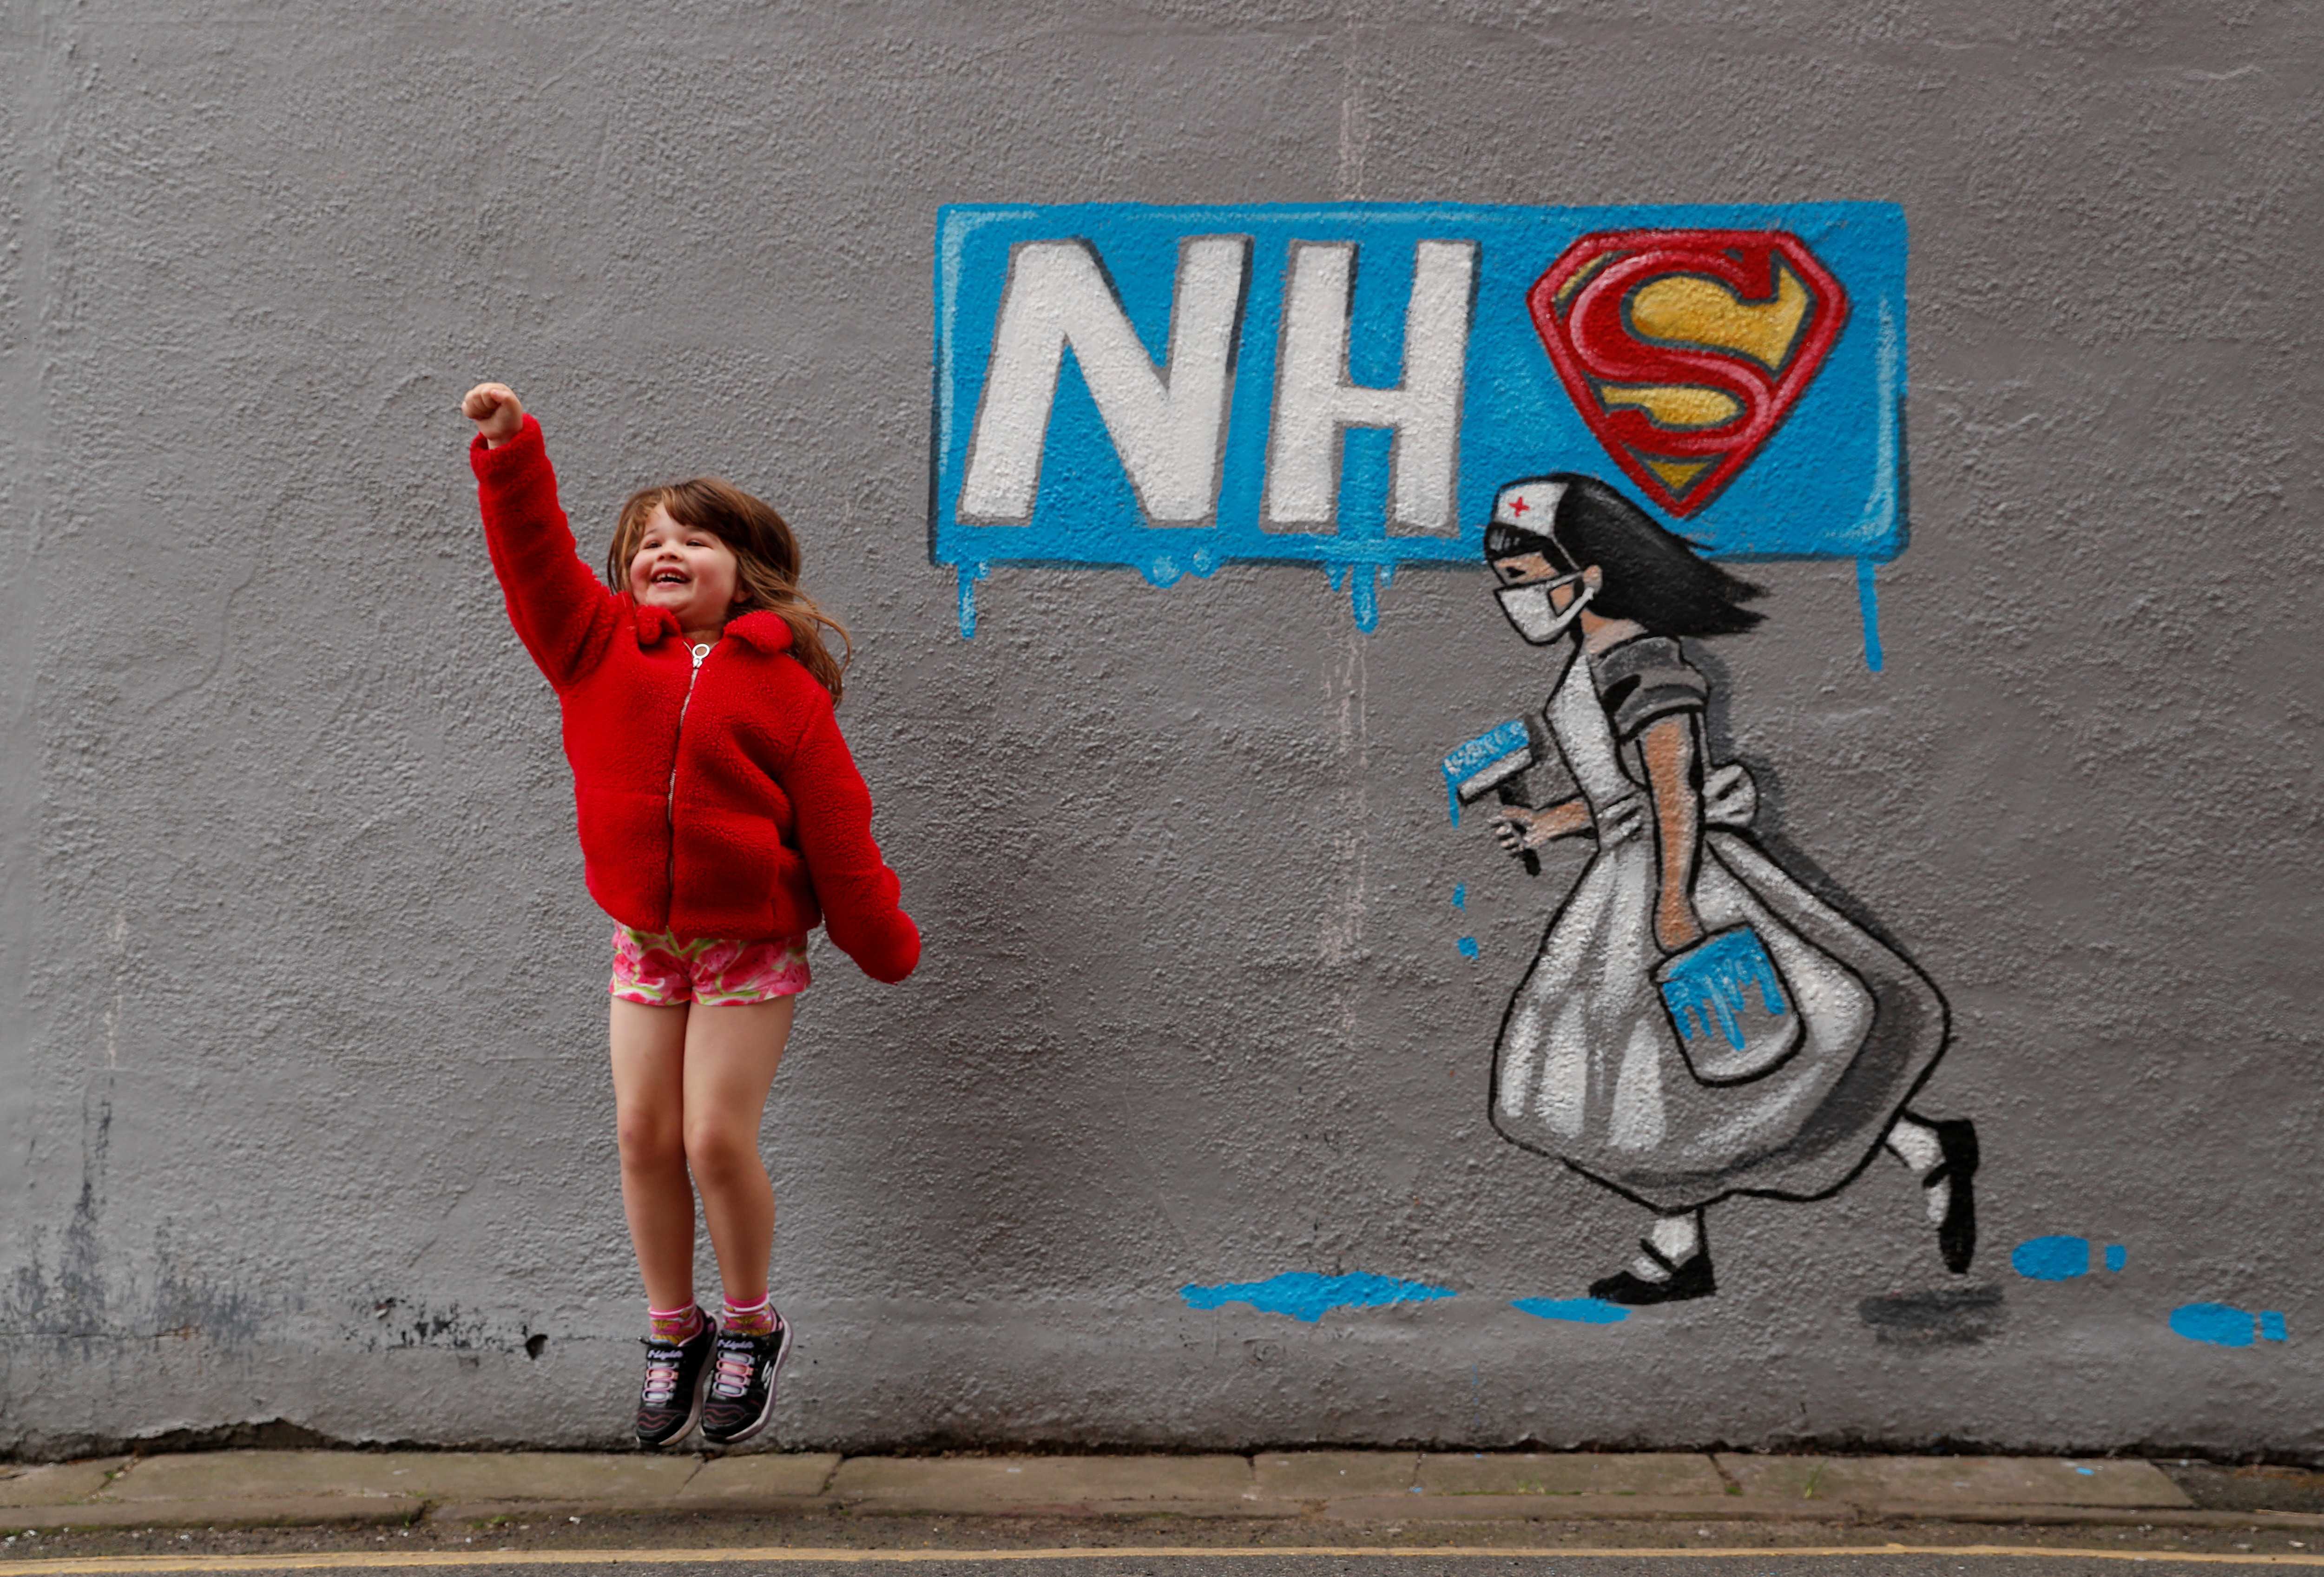 Lilly Davenport poses for her dad infront of a mural in tribute to the NHS painted by artist Rachel List on the wall of the Horse Vaults pub in Pontefract, as the spread of the coronavirus disease (COVID-19) continues, Pontefract, Britain, April 4, 2020. REUTERS/Lee Smith     TPX IMAGES OF THE DAY - RC2MXF9W1C9I